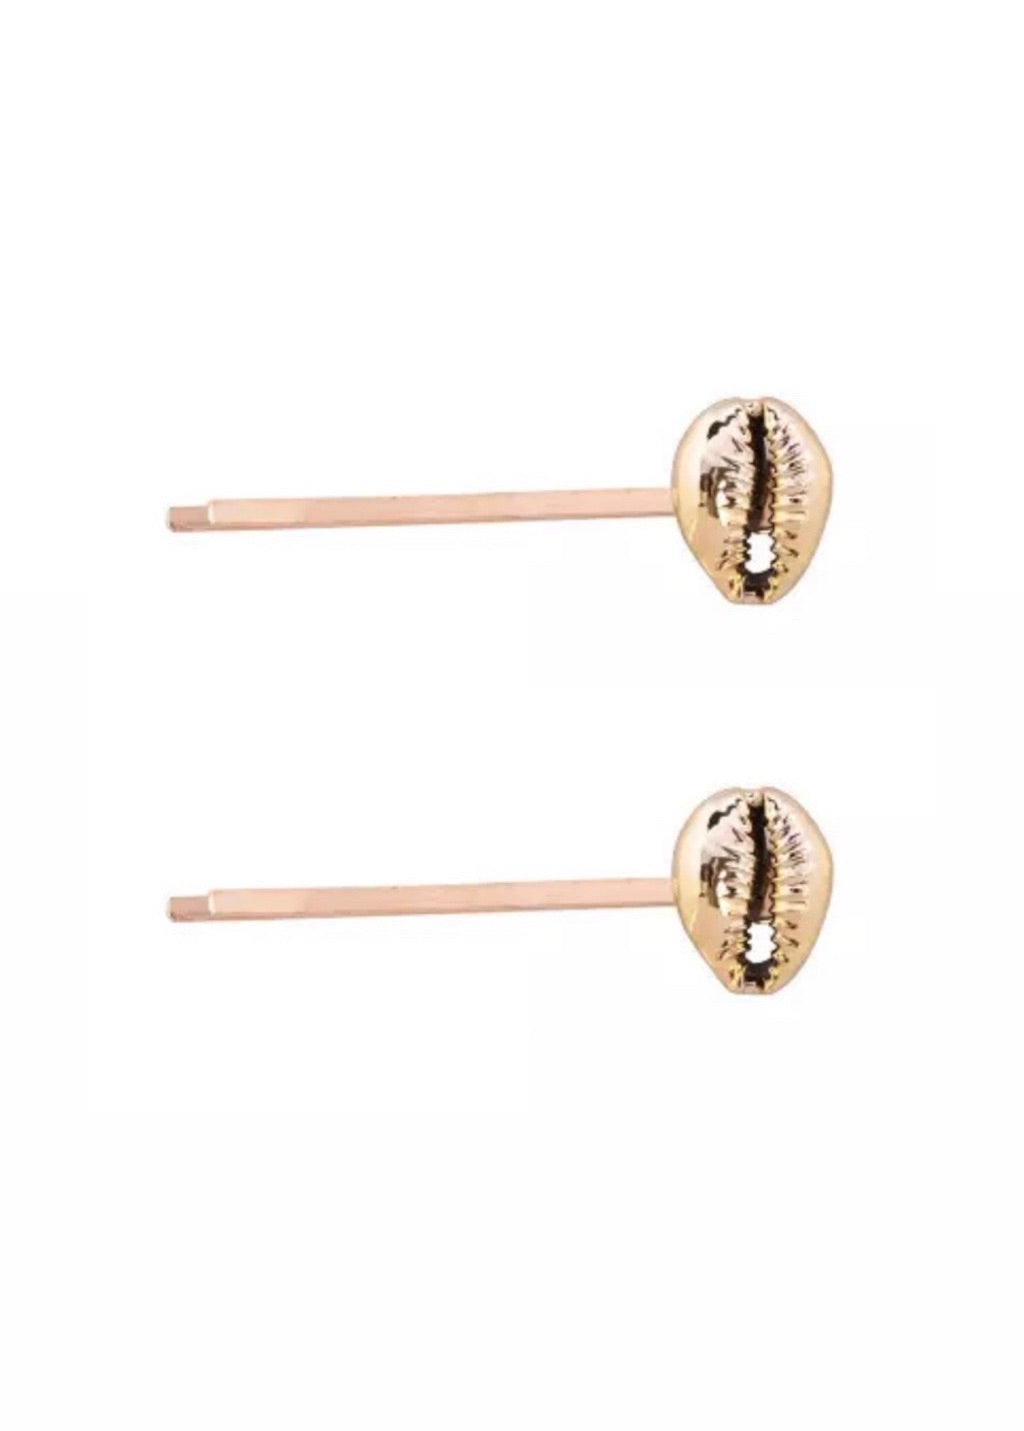 Gold 2PC shell hair slides